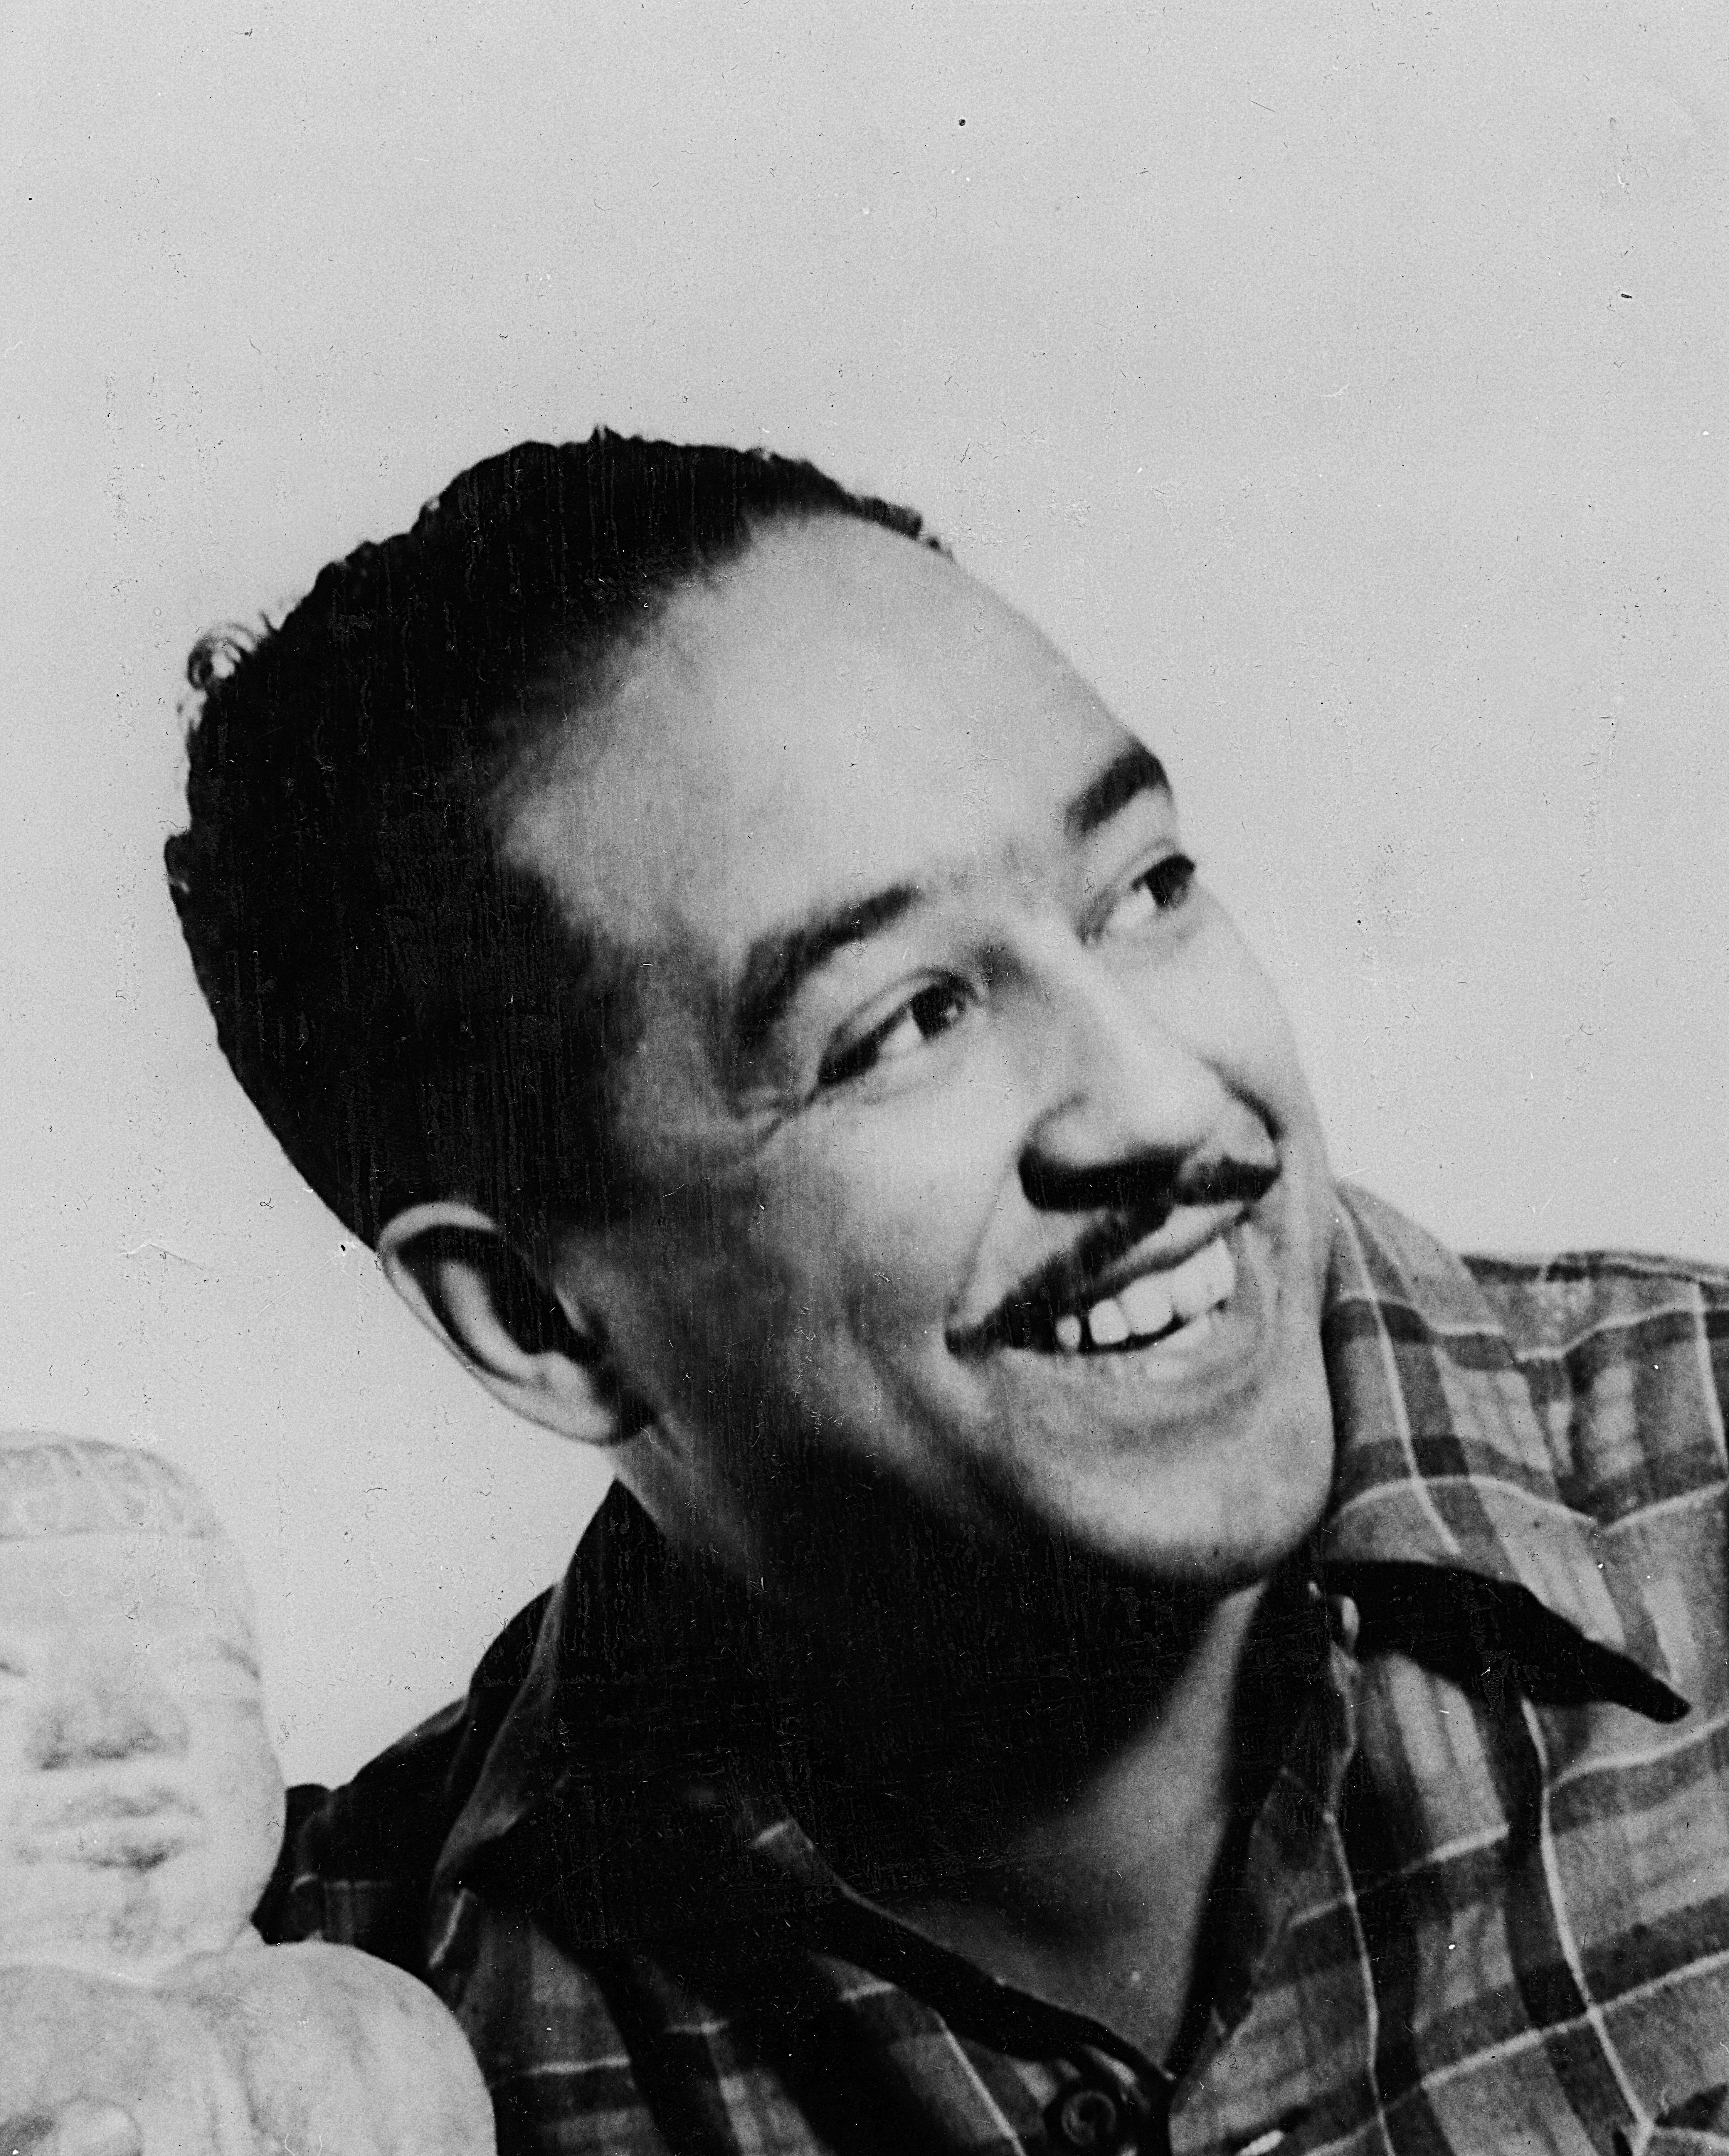 langston hughes use of nature that shows the powerful struggles of human life Langston hughes compares a broken-winged bird to life meaning life can hard at point the message of this part of a poem is that life can hard and struggling as a broken-winged bird trying to fly but cannot.